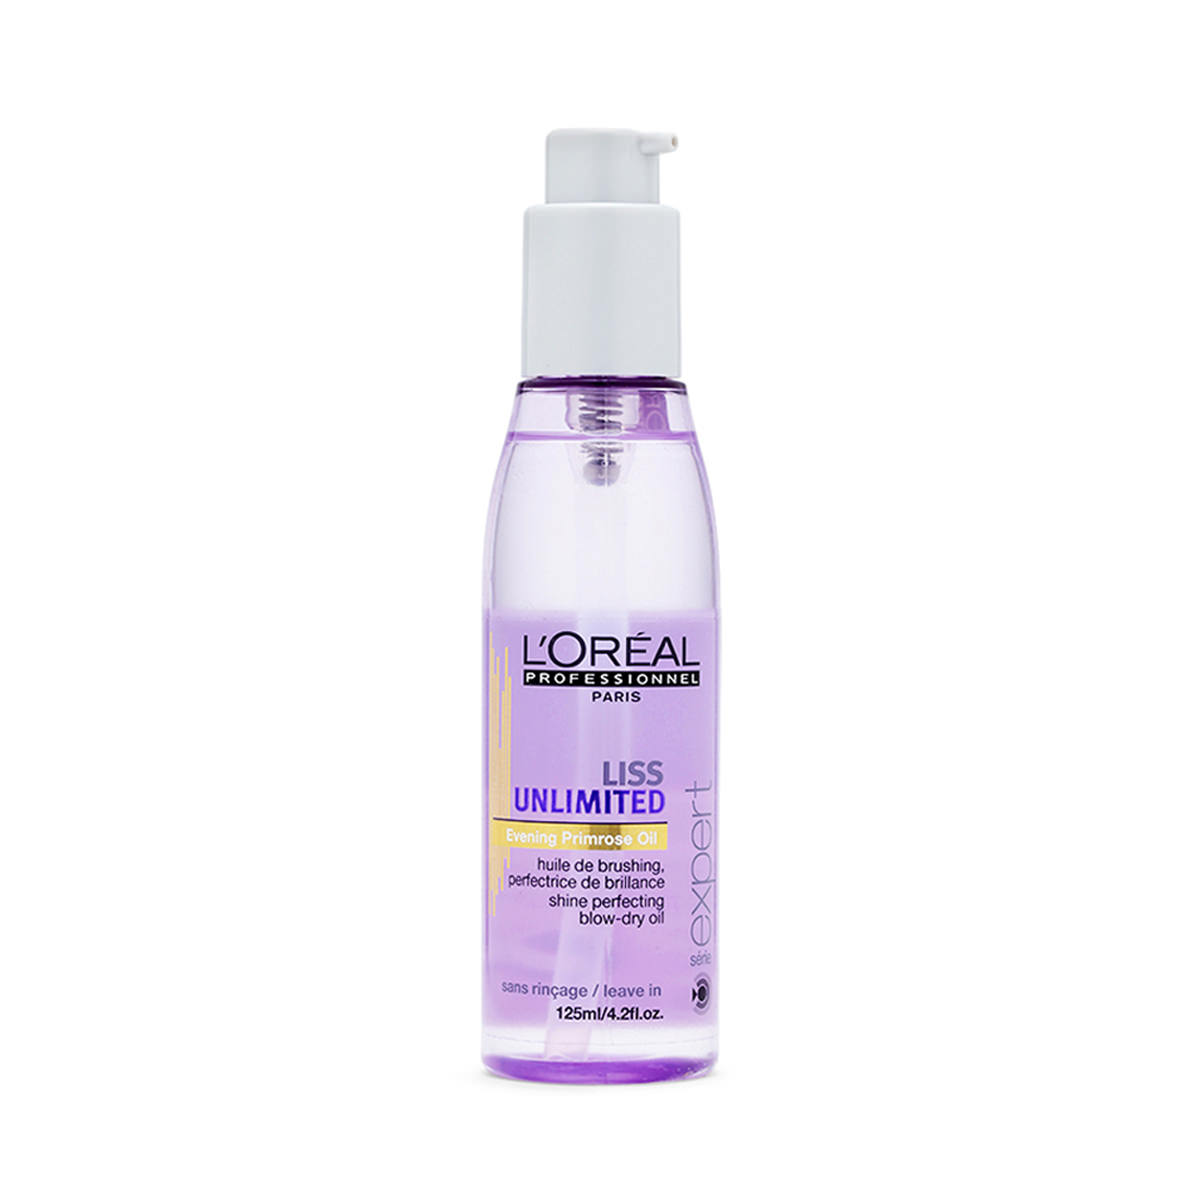 L'oreal-Professionnel-Liss-Unlimited-Shine-Perfecting-Blow-Dry-Oil-(125-ml)-sfw(1)